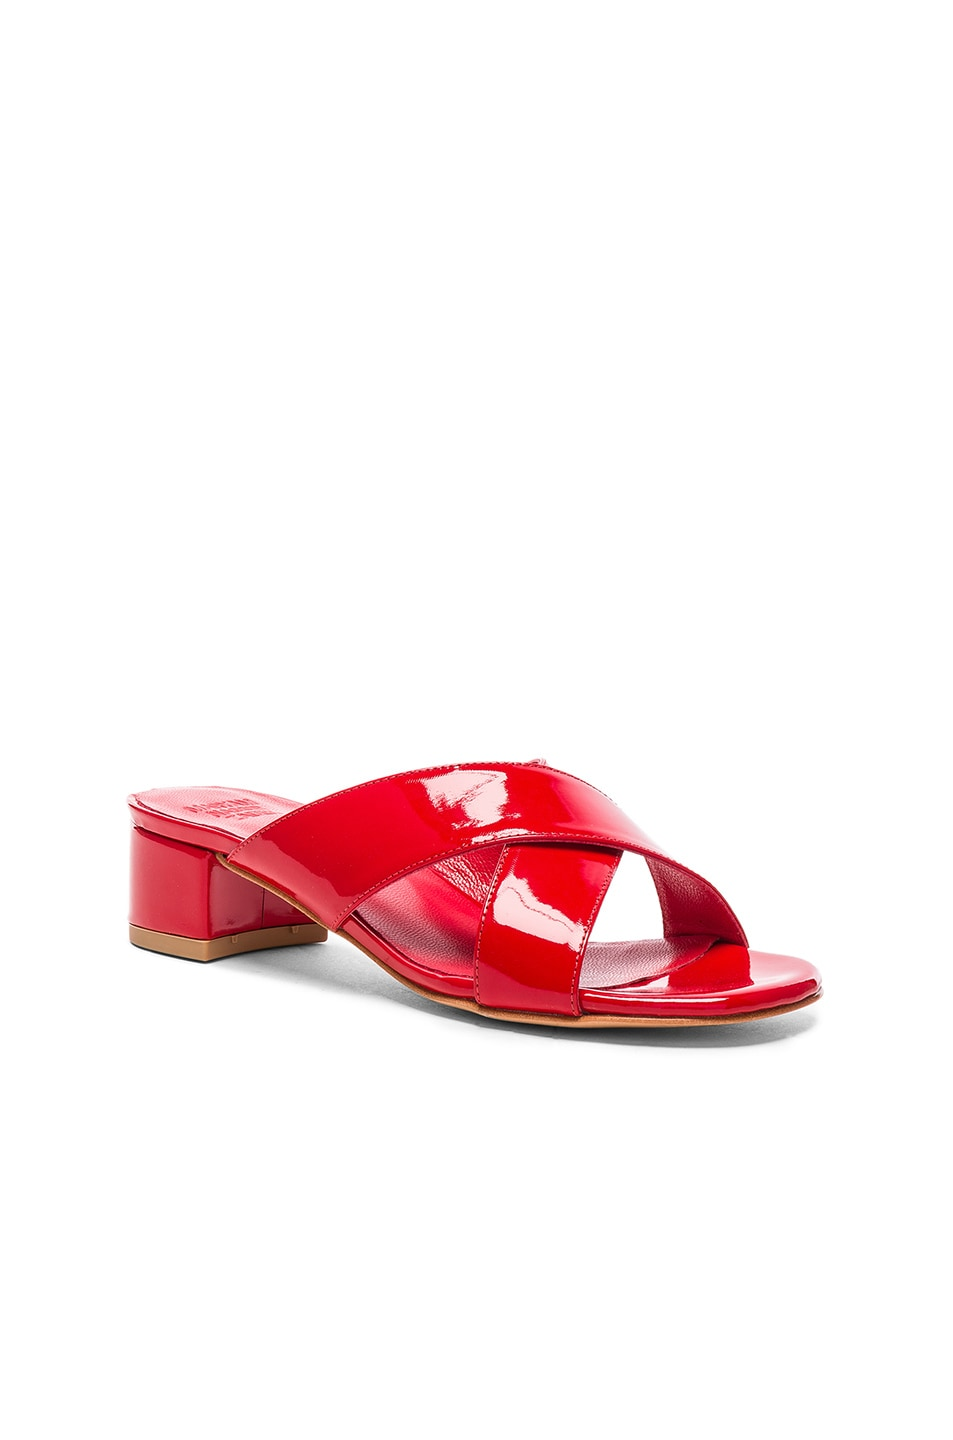 Image 2 of Maryam Nassir Zadeh Patent Leather Lauren Slide Heels in Poppy Patent